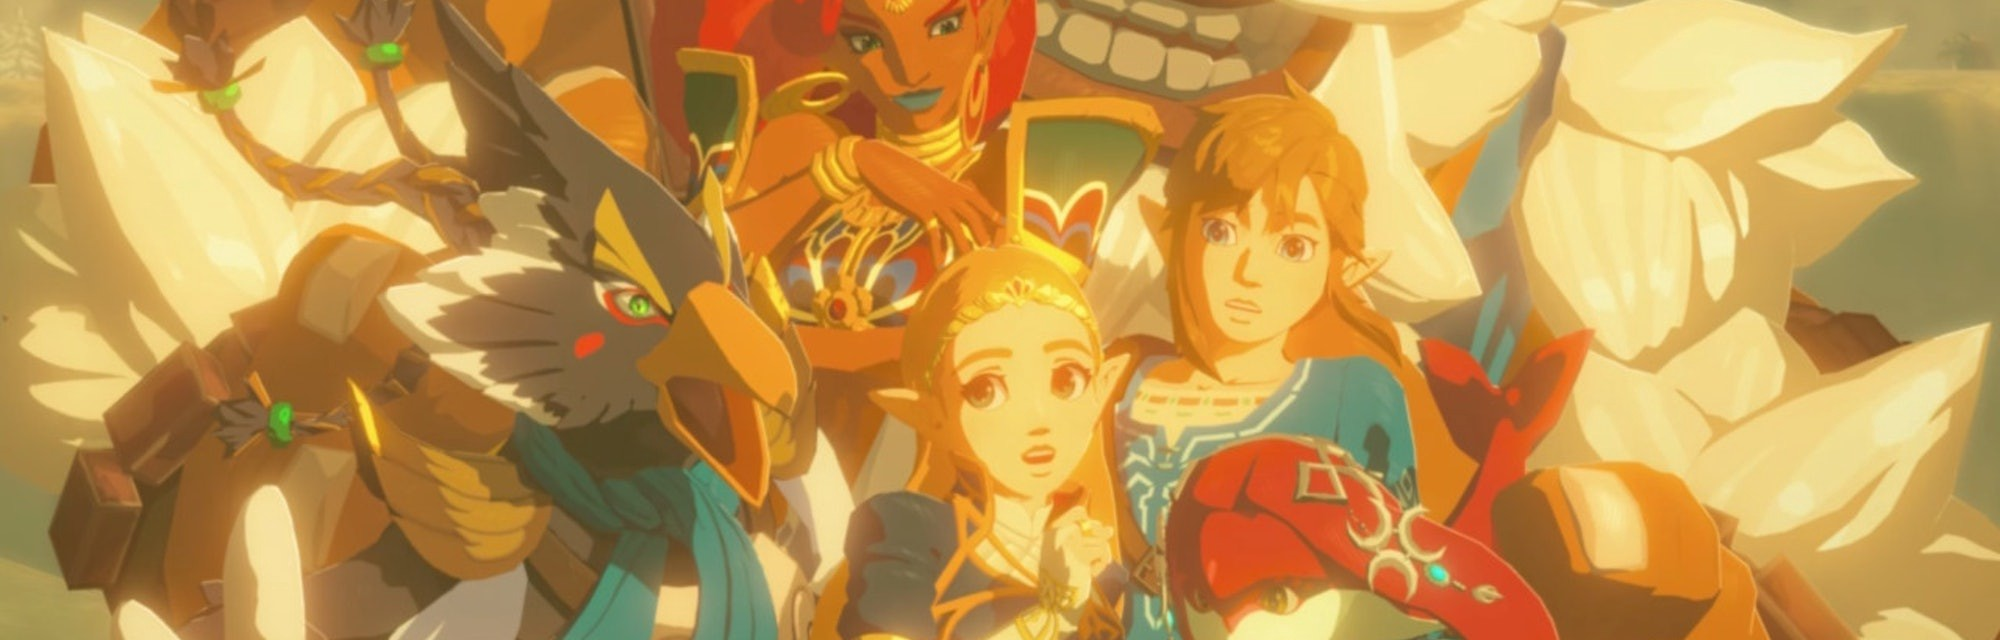 Nintendo S Potential Holiday Hit Hyrule Warriors Age Of Calamity By Dylan Micheli Fanfare Medium